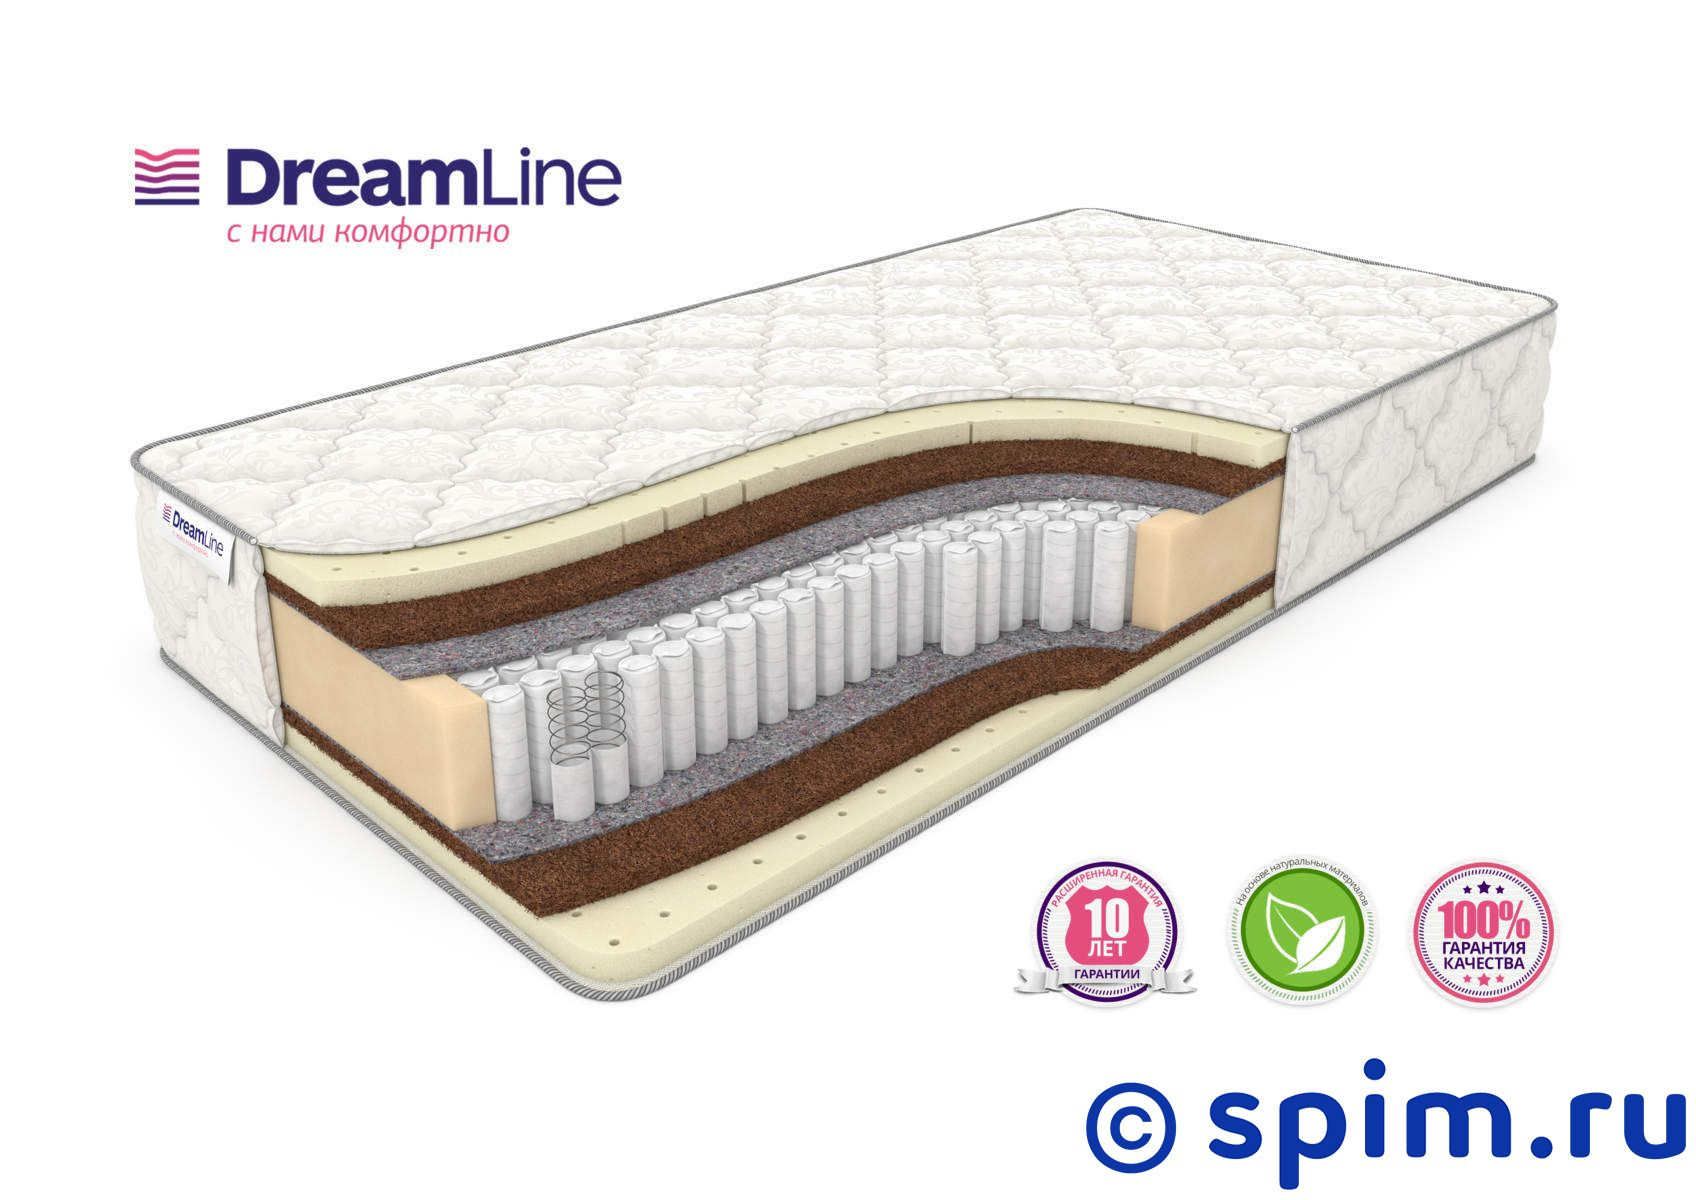 Матрас DreamLine Prime Medium S1000 80х200 см матрас dreamline memory dream s 1000 140x195